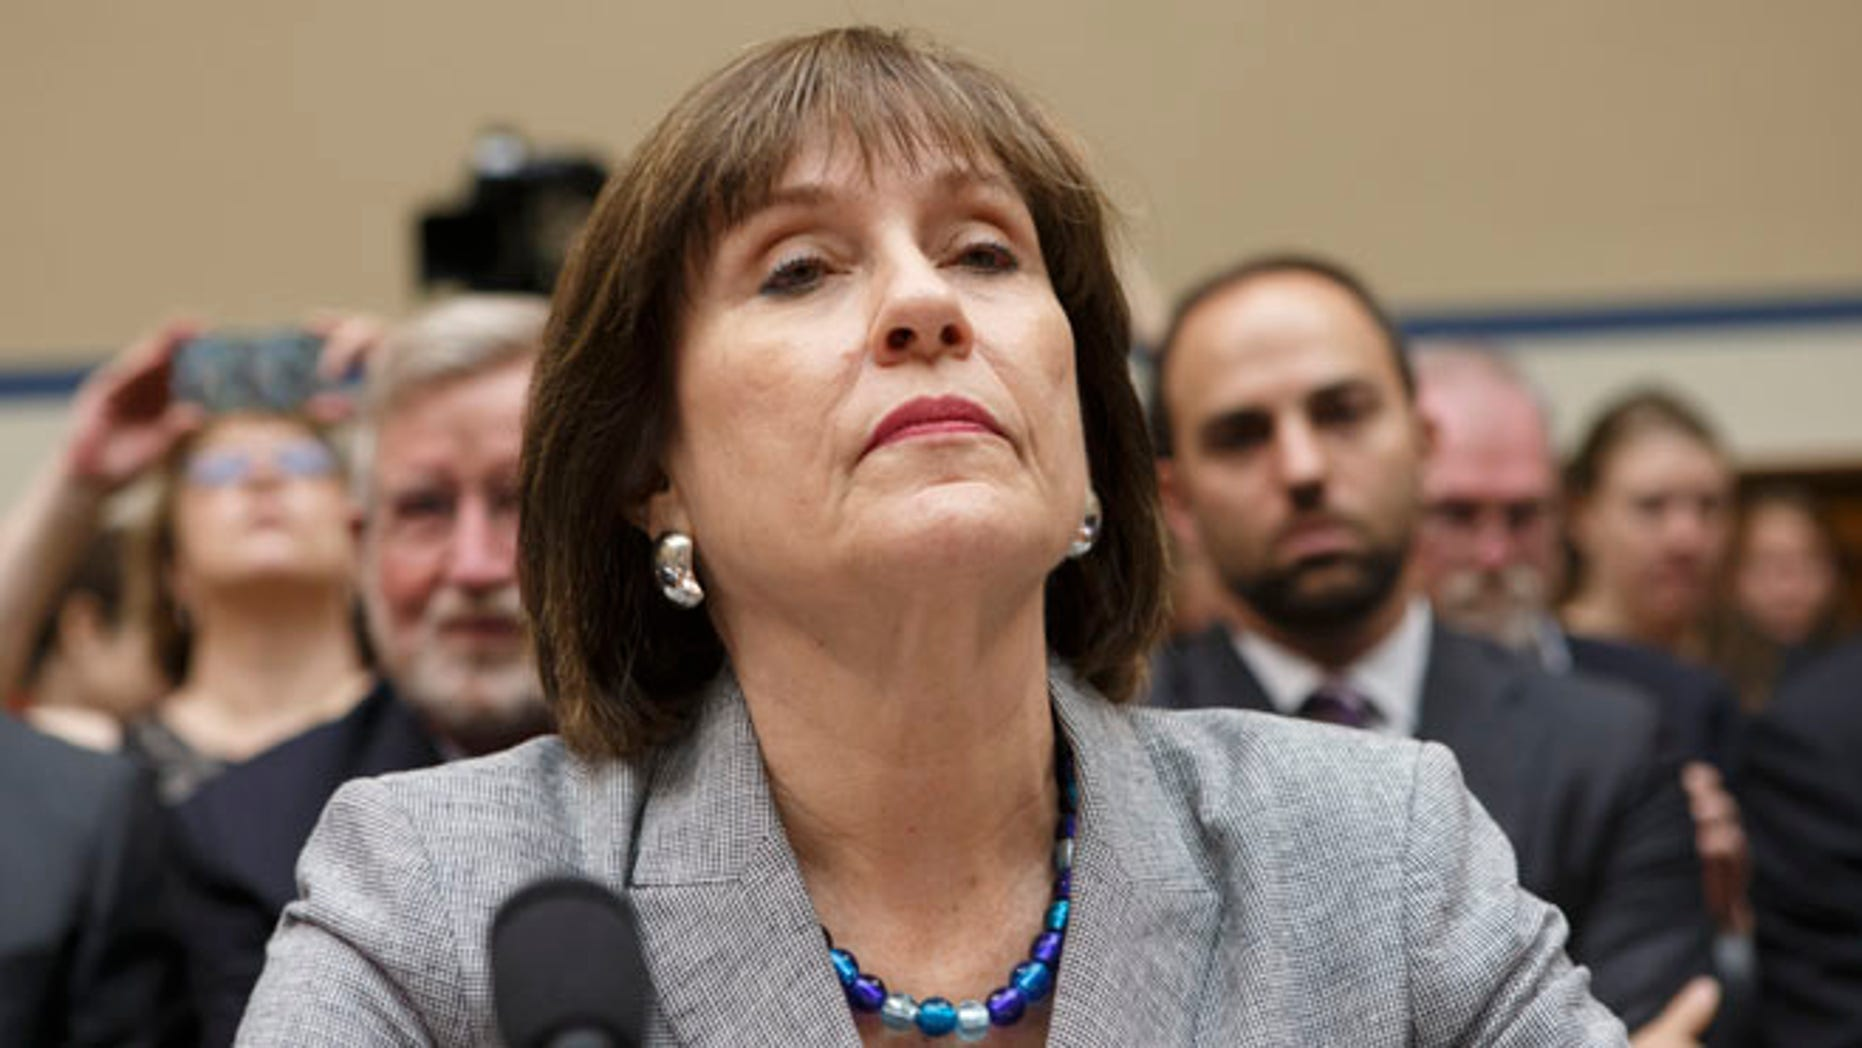 This May 22, 2013 file photo shows Internal Revenue Service (IRS) official Lois Lerner on Capitol Hill in Washington.